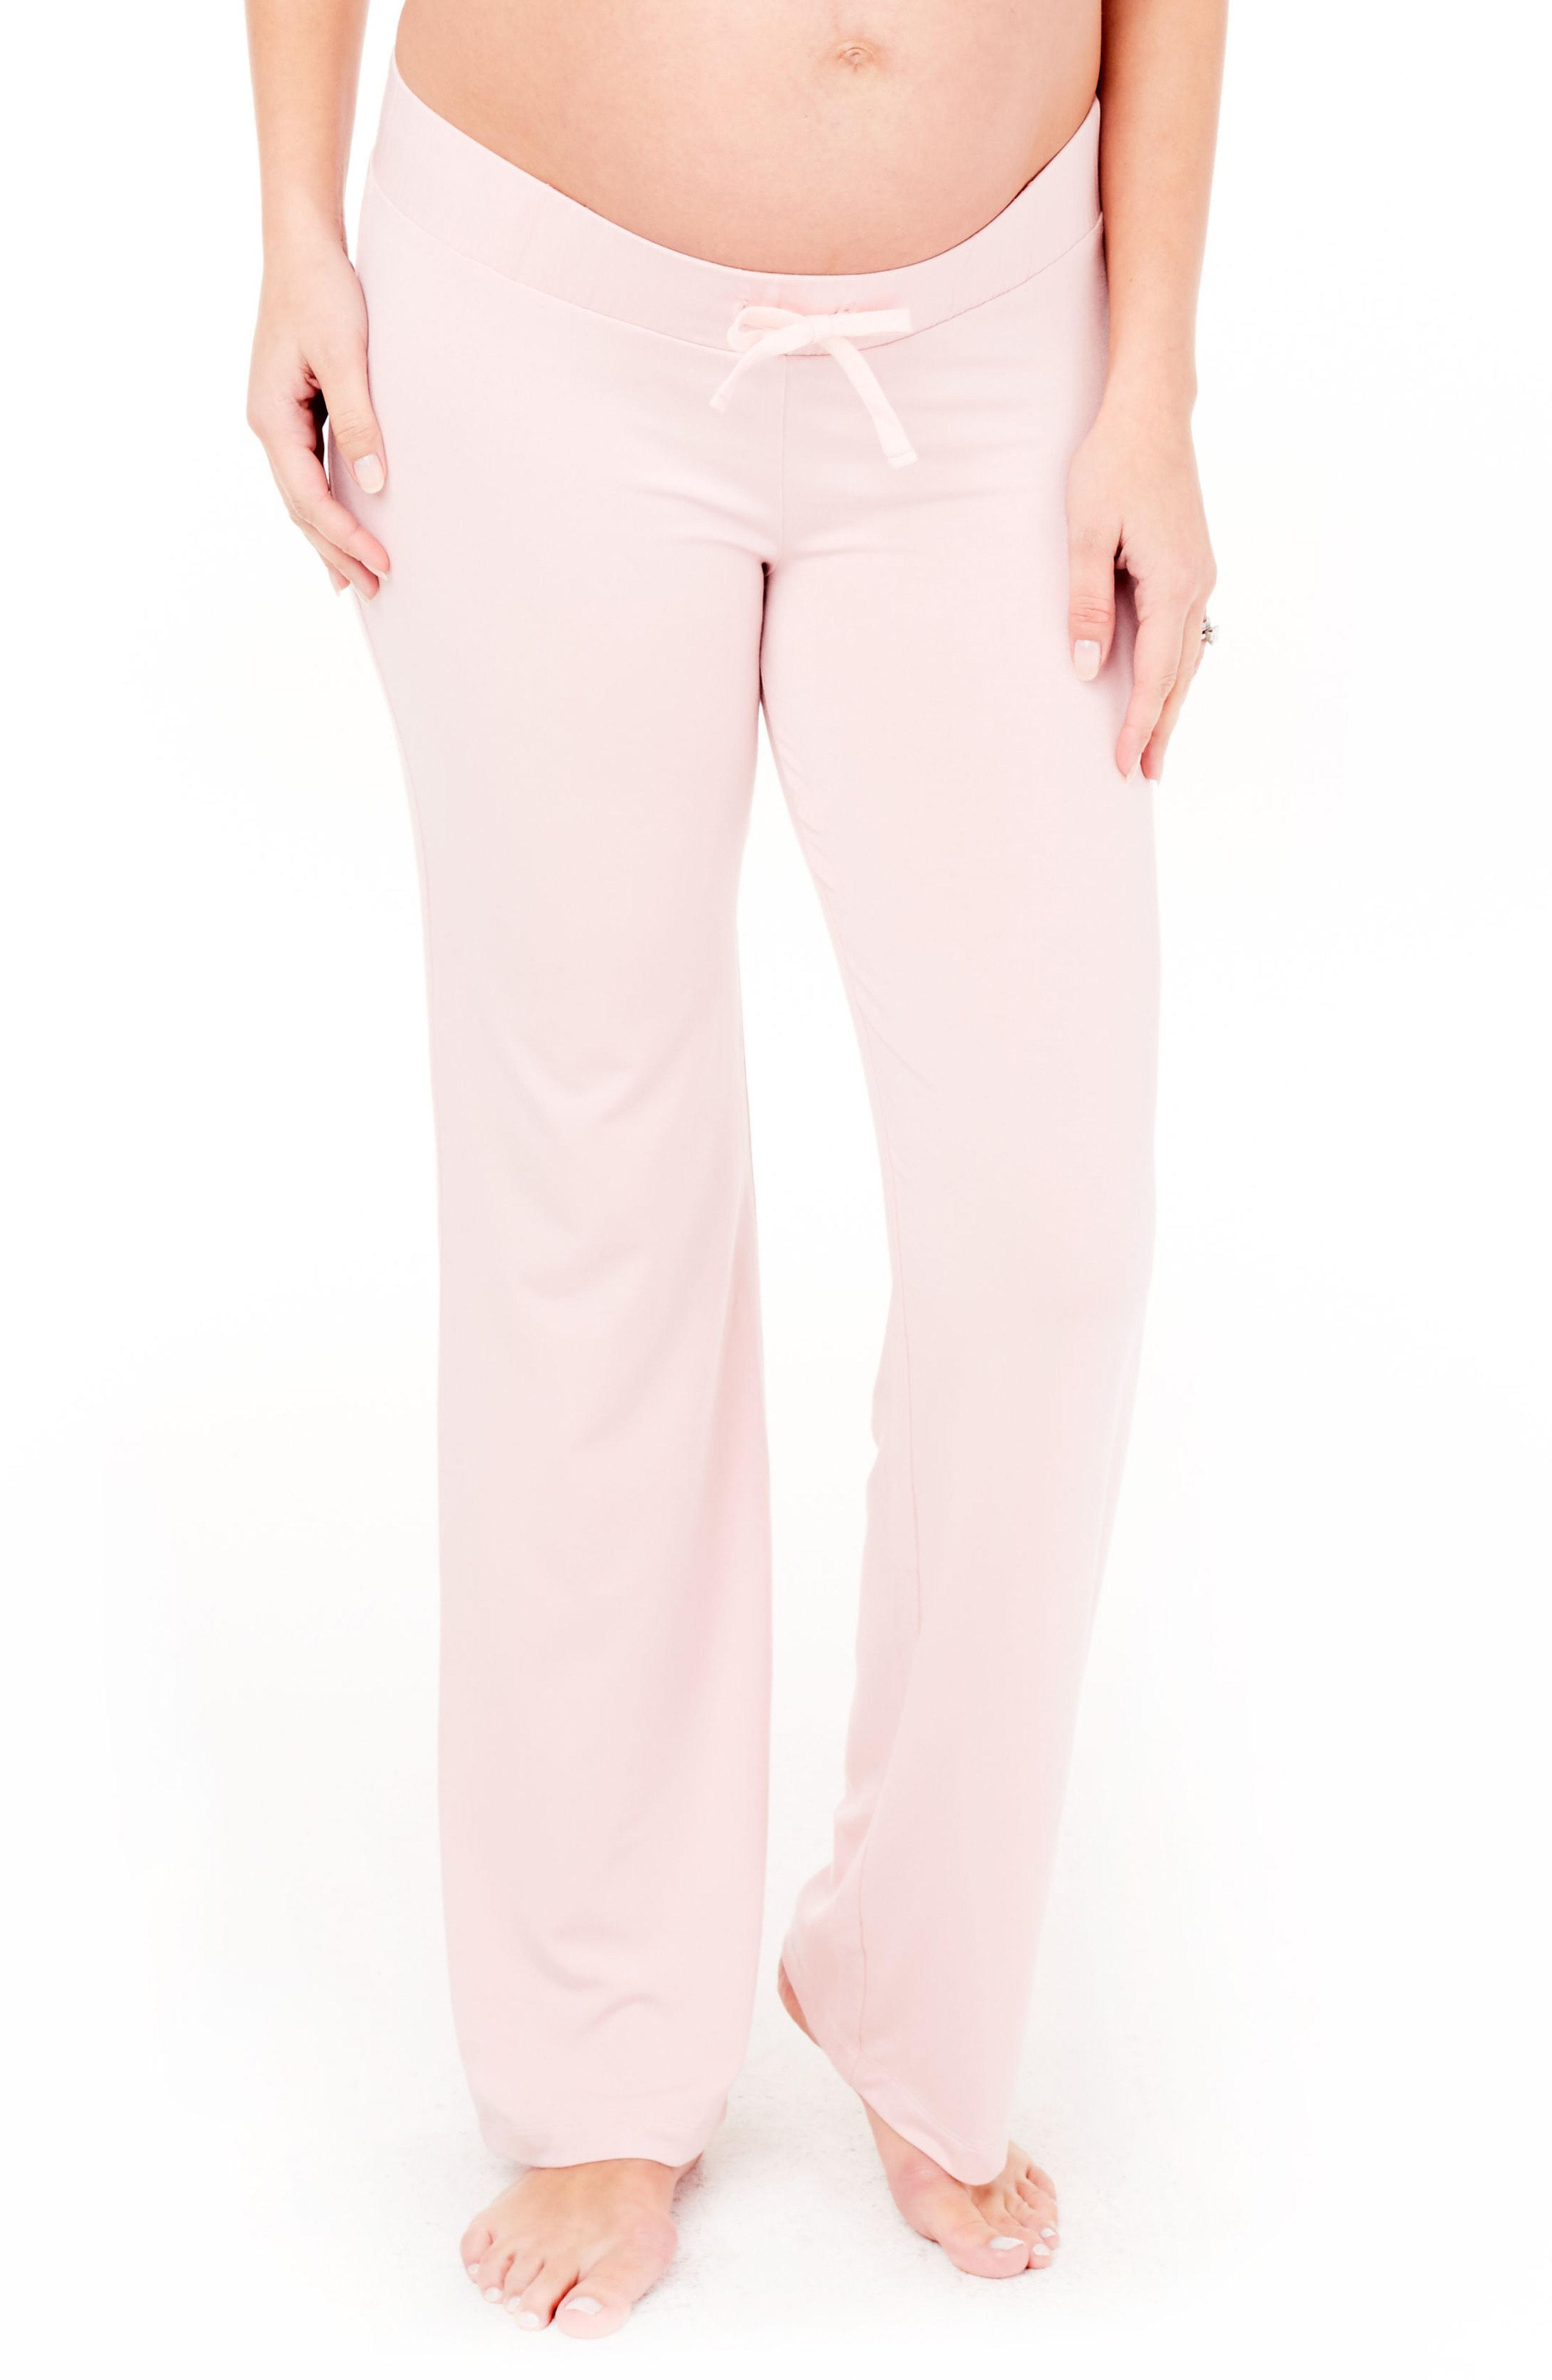 924bdb9a41e60 Lyst - Ingrid & Isabel Ingrid & Isabel Maternity Lounge Pants in Pink